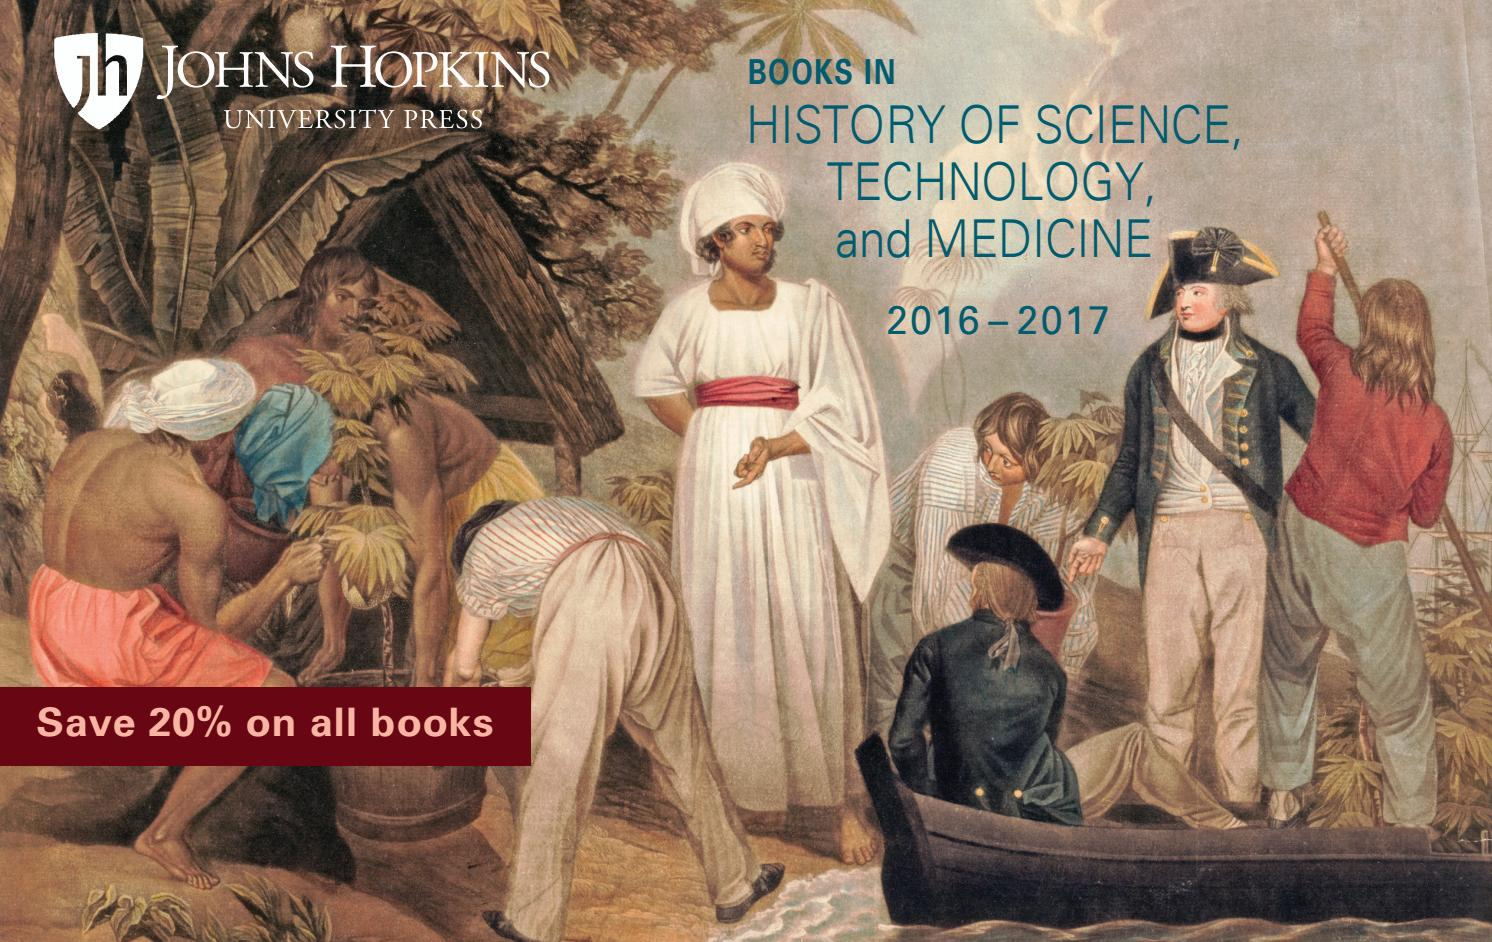 essay on history of technology The history of technology essay - technology has had a huge impact on the universe ever since the first tools were created everything that has been discovered or invented in the technological aspect has revolutionized rapidly to.